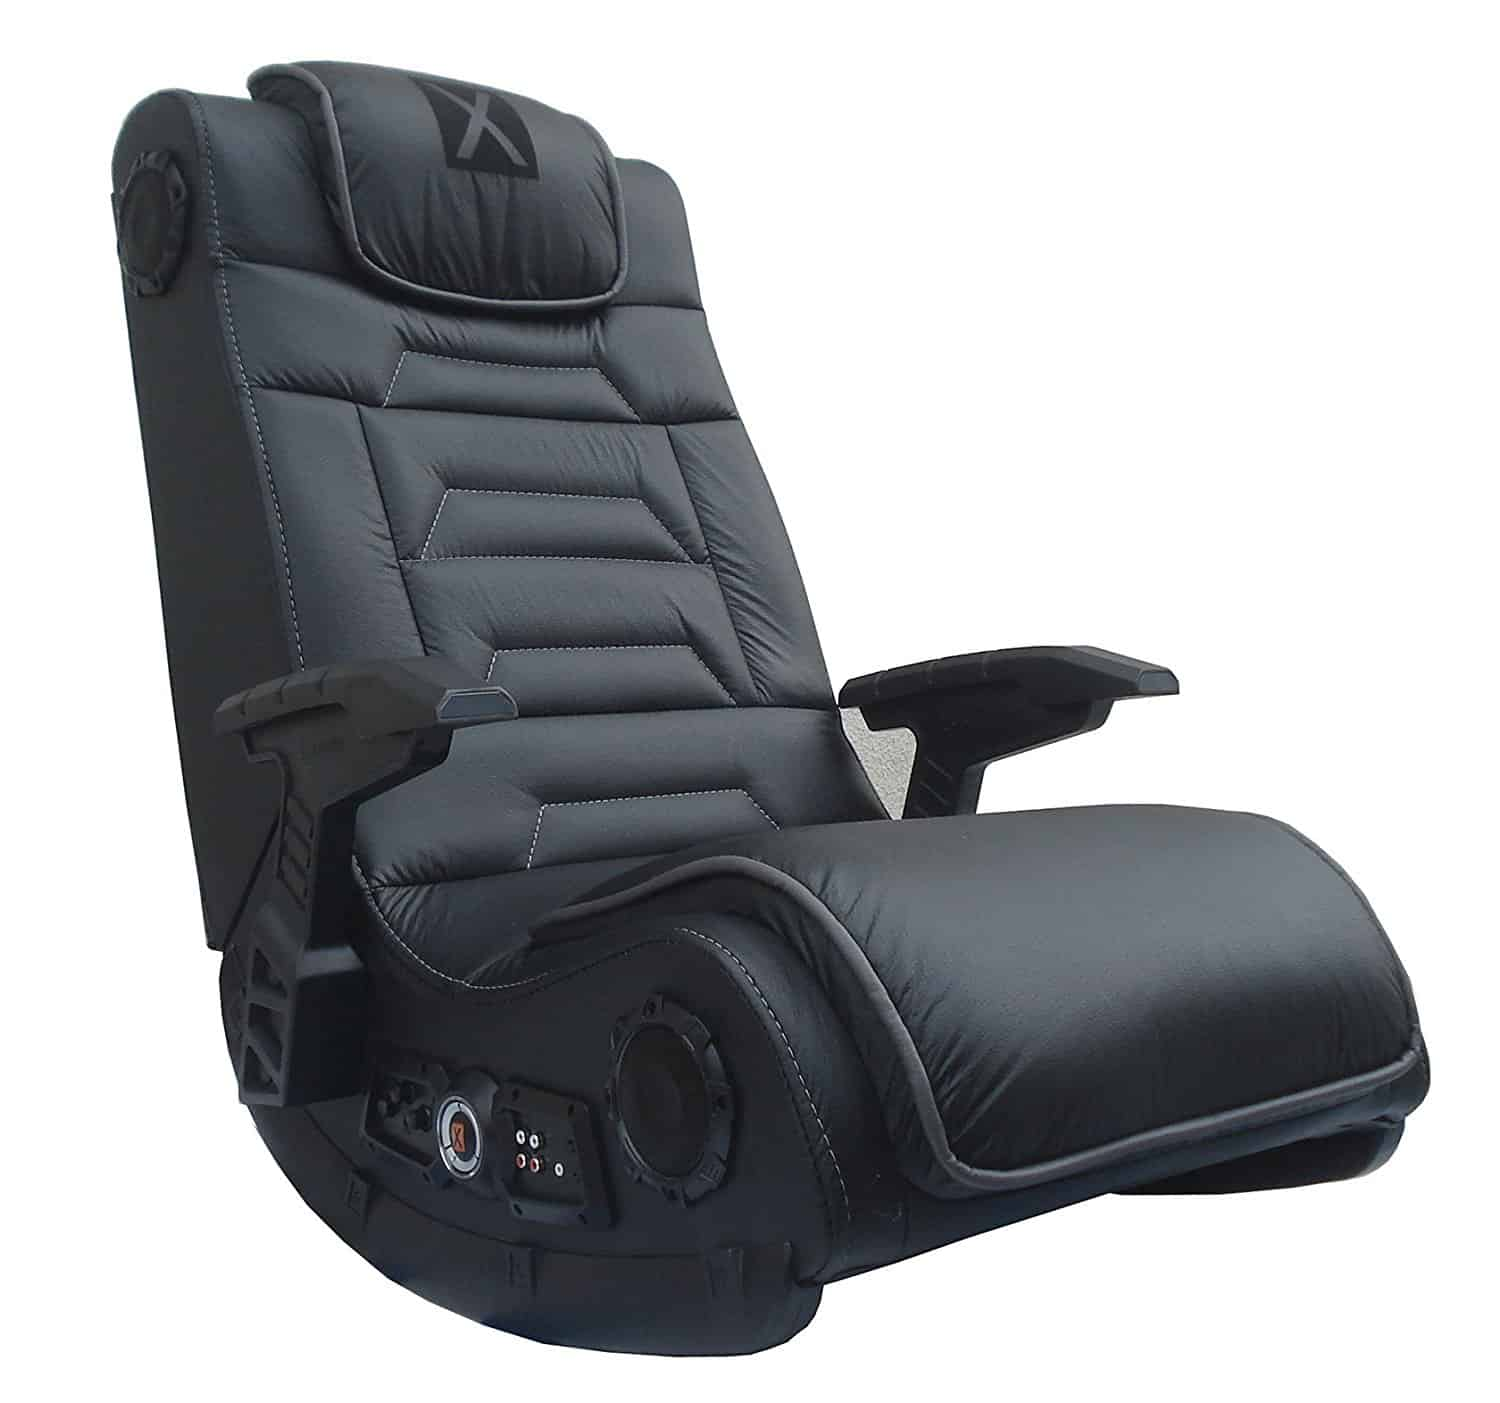 X-Rocker-51259-Pro-H3-4.1-Gaming-Chair